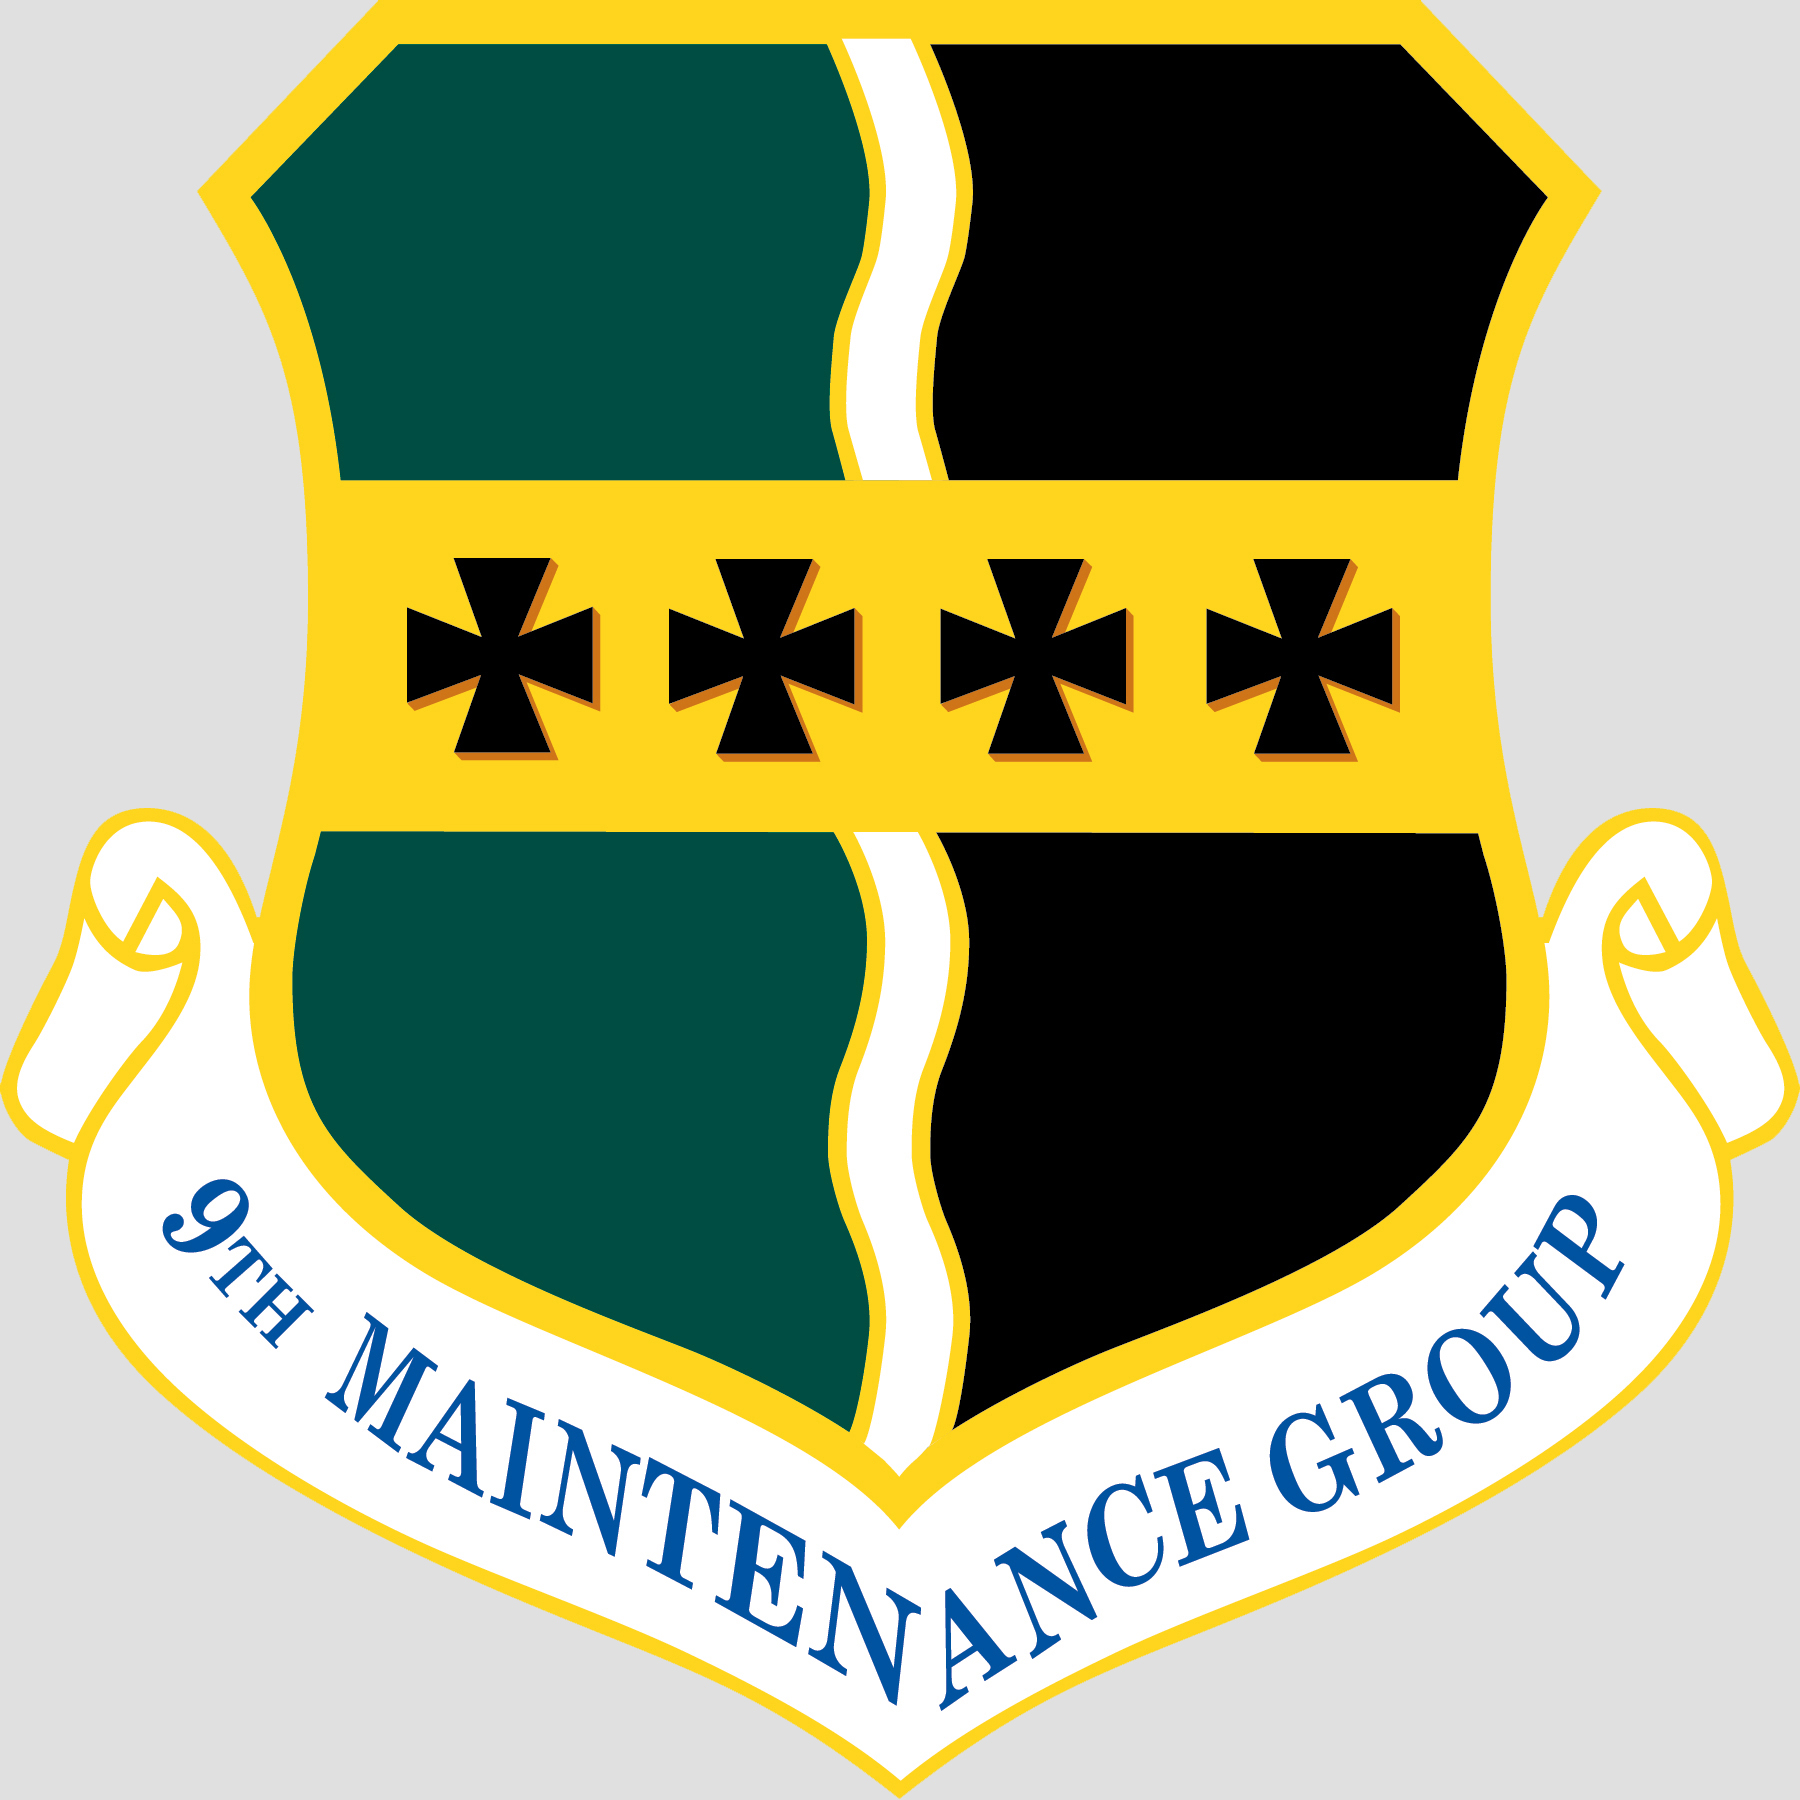 9th Maintenance Group